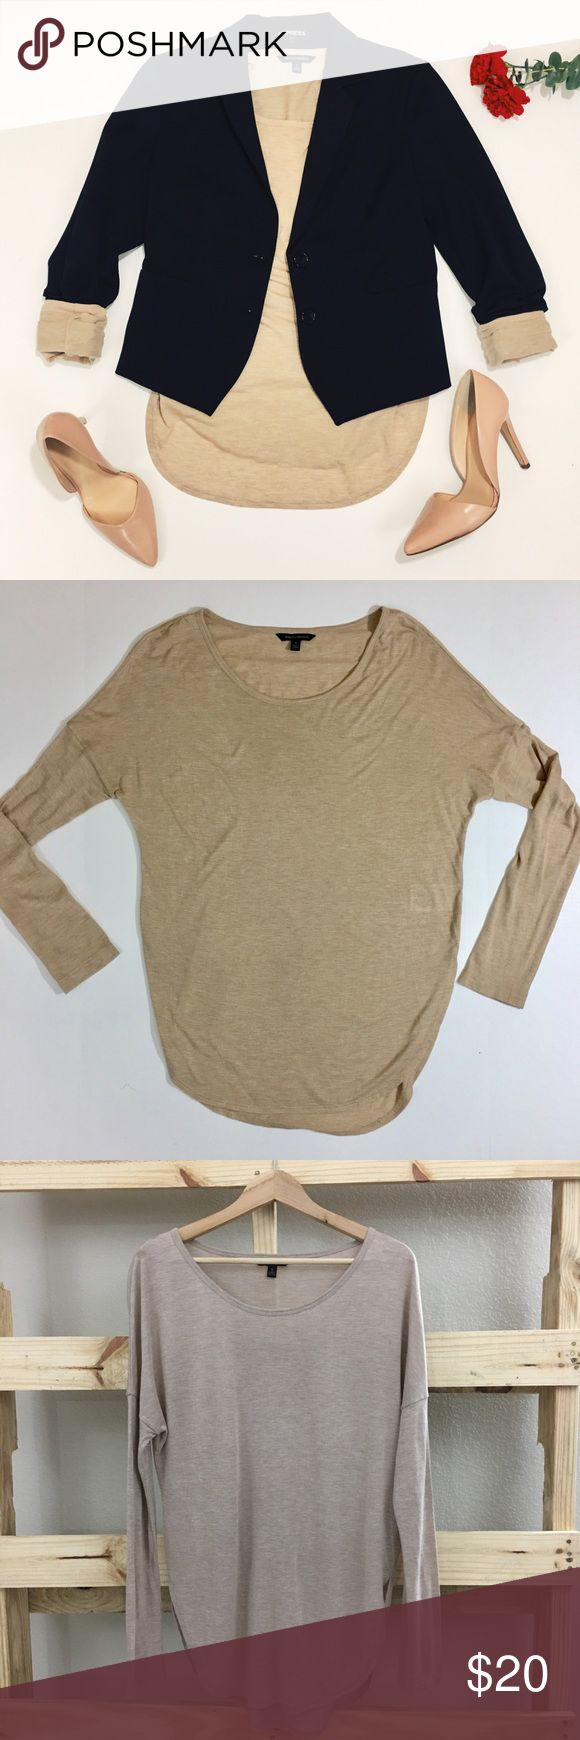 Banana Republic long sleeve top Simple beige long sleeve shirt by Banana Republic. Very light and flattering, with a scoop neck. In perfect condition. Worn just once, unfortunately a terrible color for my pasty skin tone 🙈 Banana Republic Tops Tees - Long Sleeve